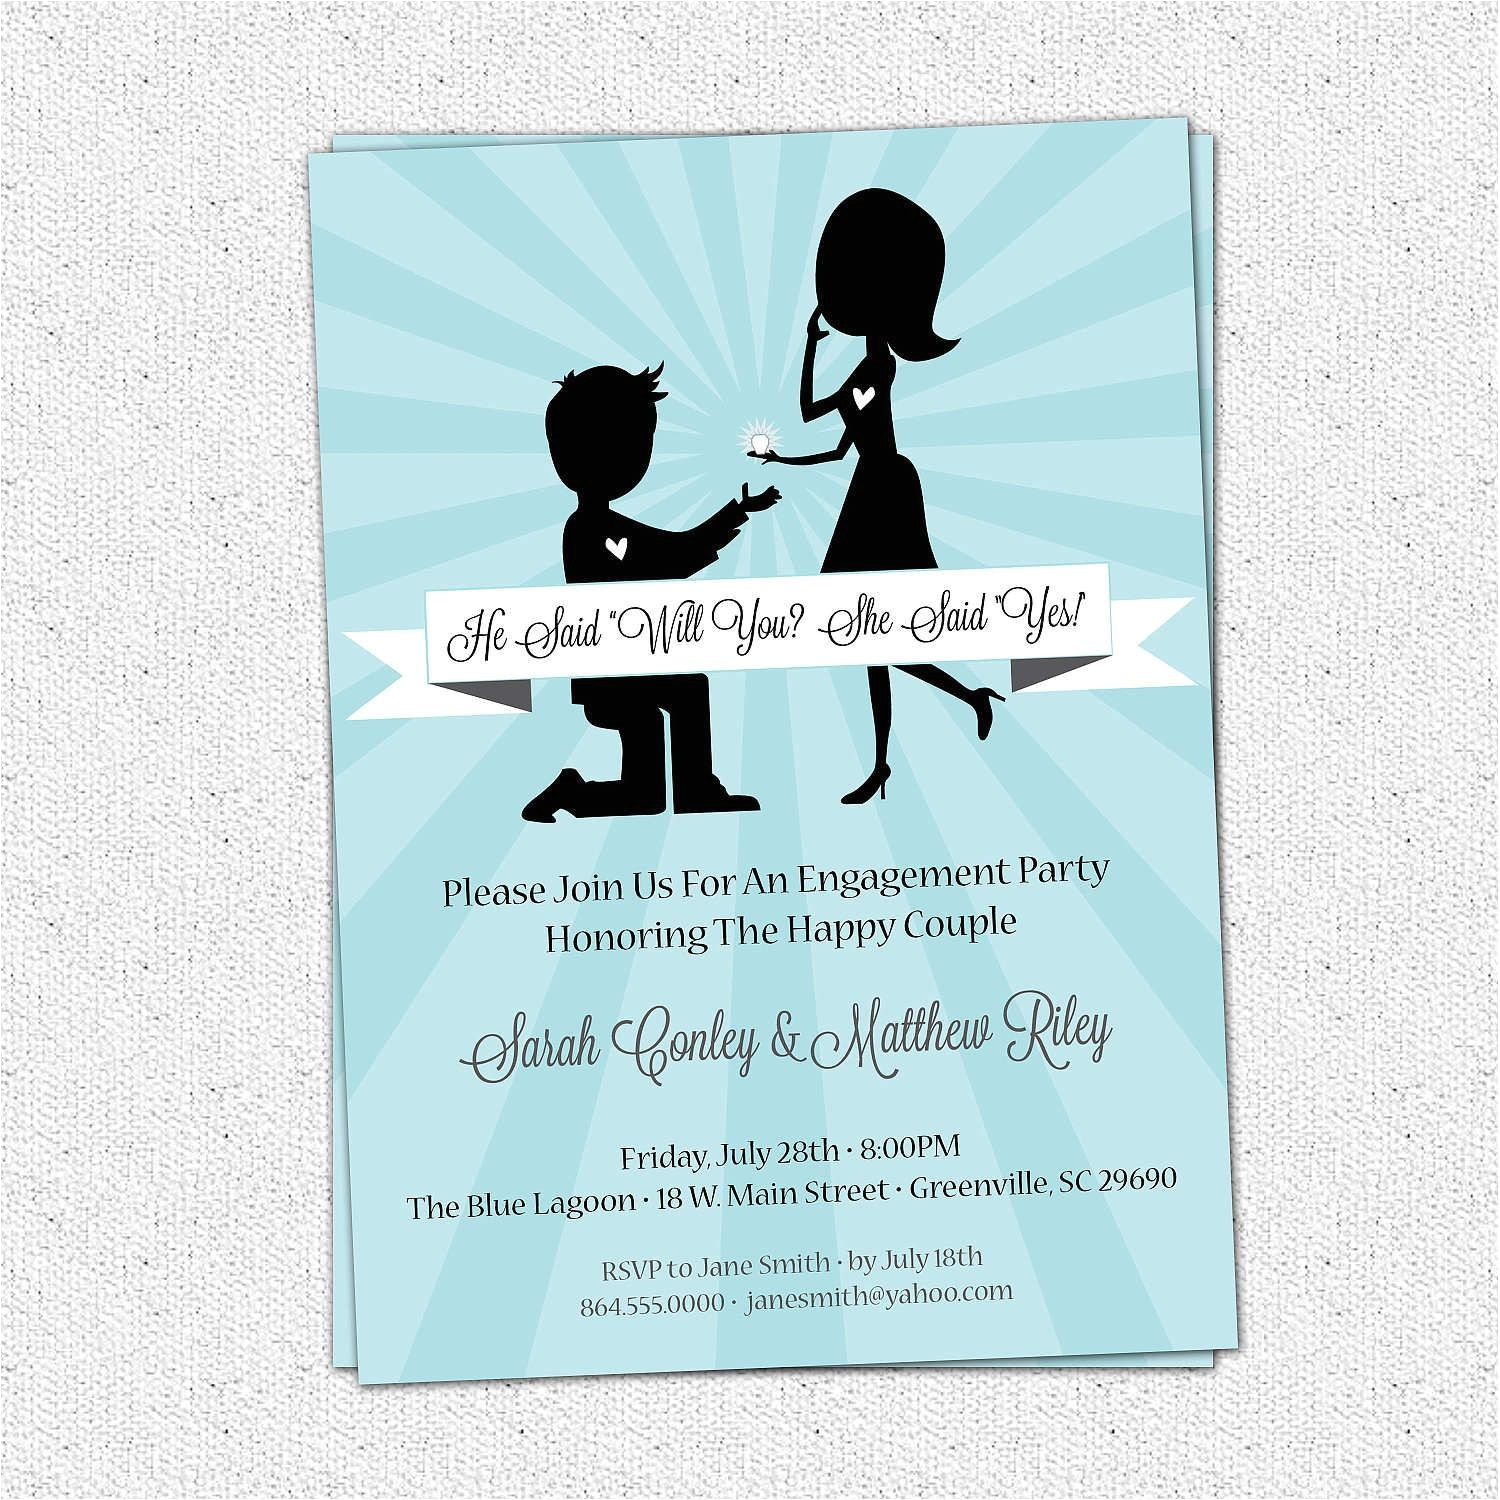 engagement party invitation wording 2